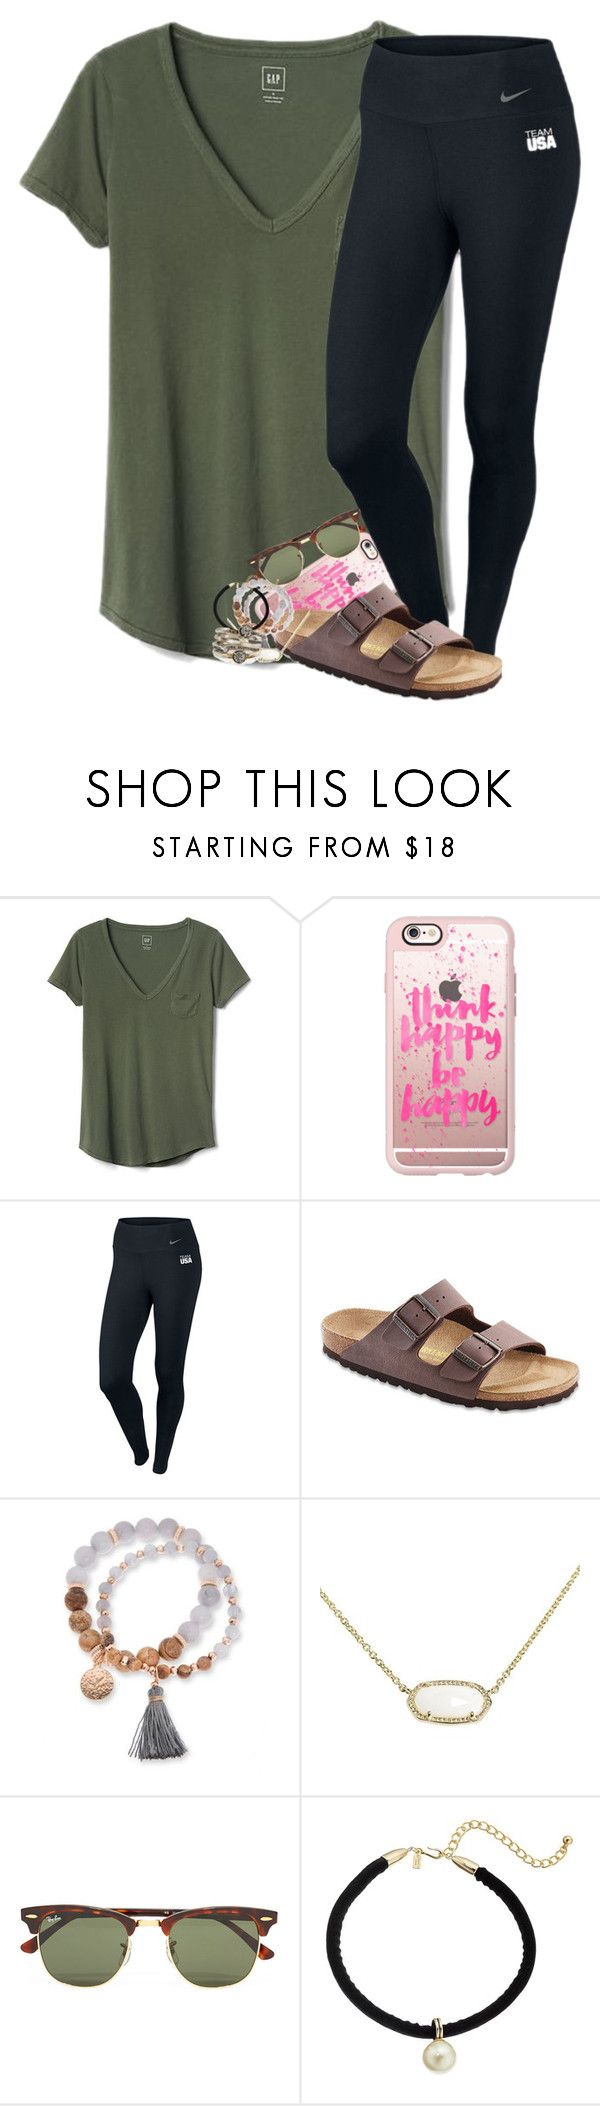 """tell me that I take your breath away"" by legitmaddywill ❤ liked on Polyvore featuring Gap, Casetify, NIKE, Birkenstock, Kim Rogers, Kendra Scott, Ray-Ban and Kenneth Jay Lane"